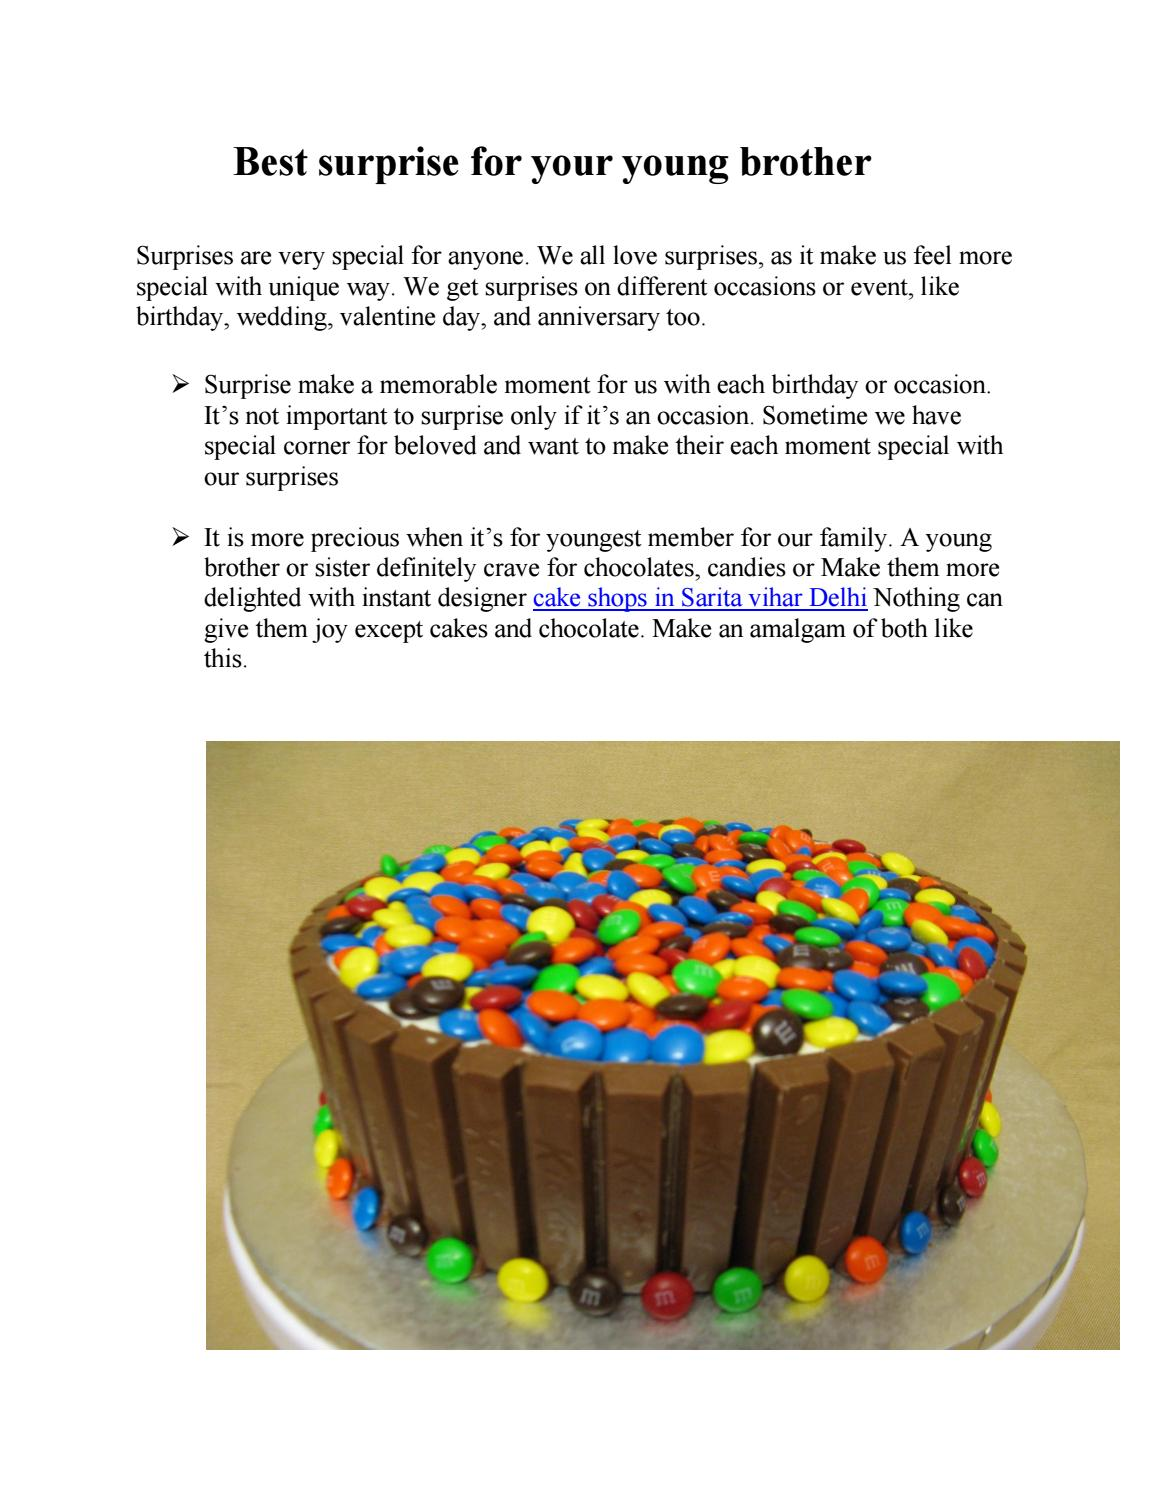 Order best surprise birthday cake for your young brother